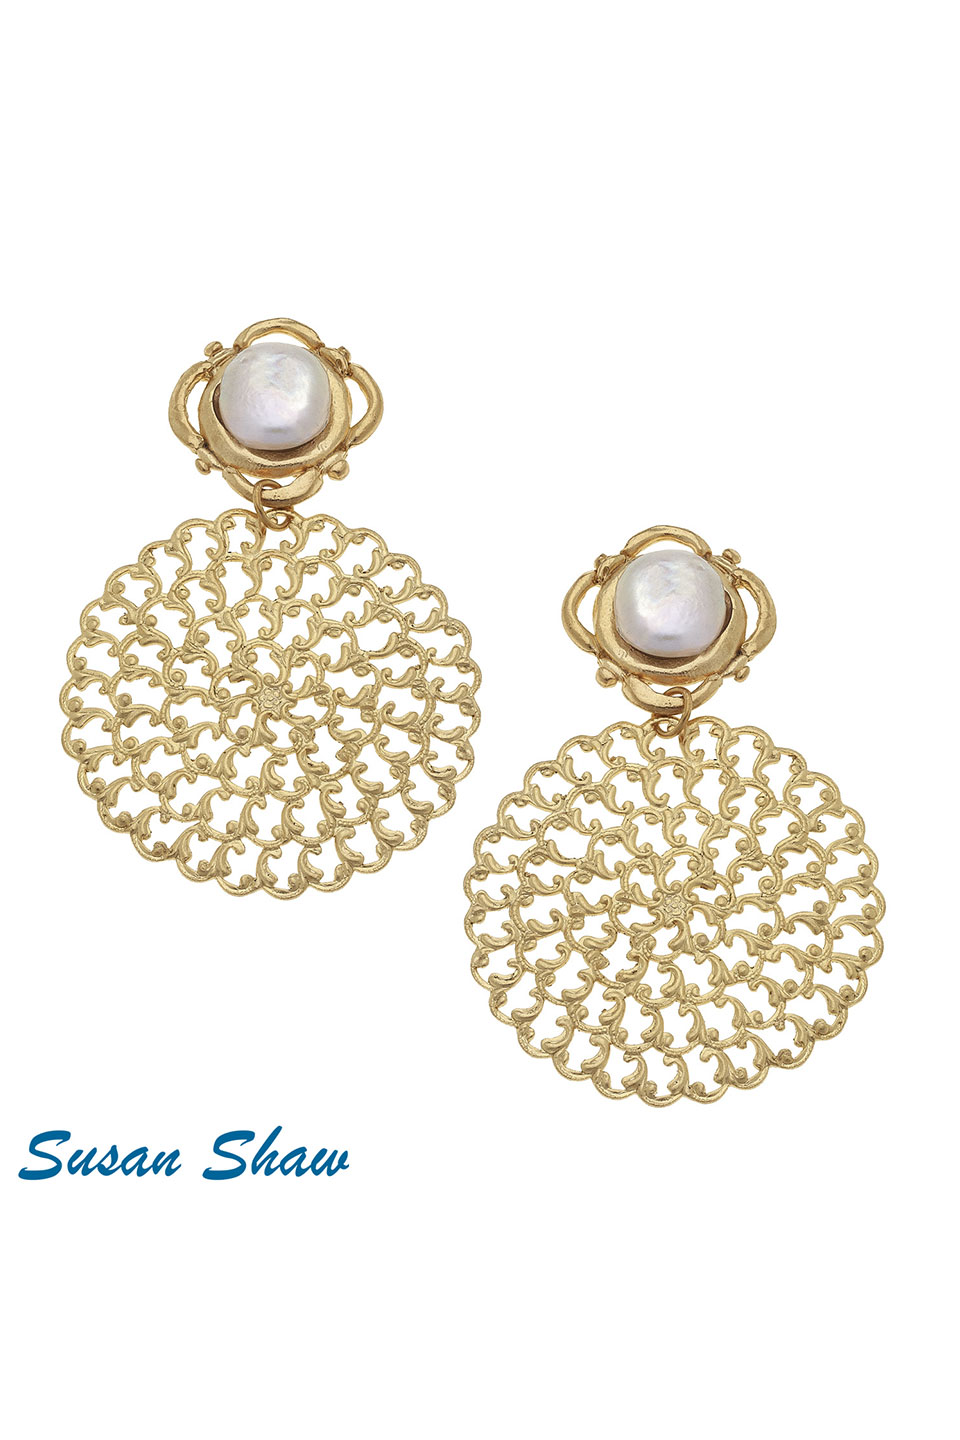 Susan Shaw Handcast Gold Filigree with White Pearl Earrings